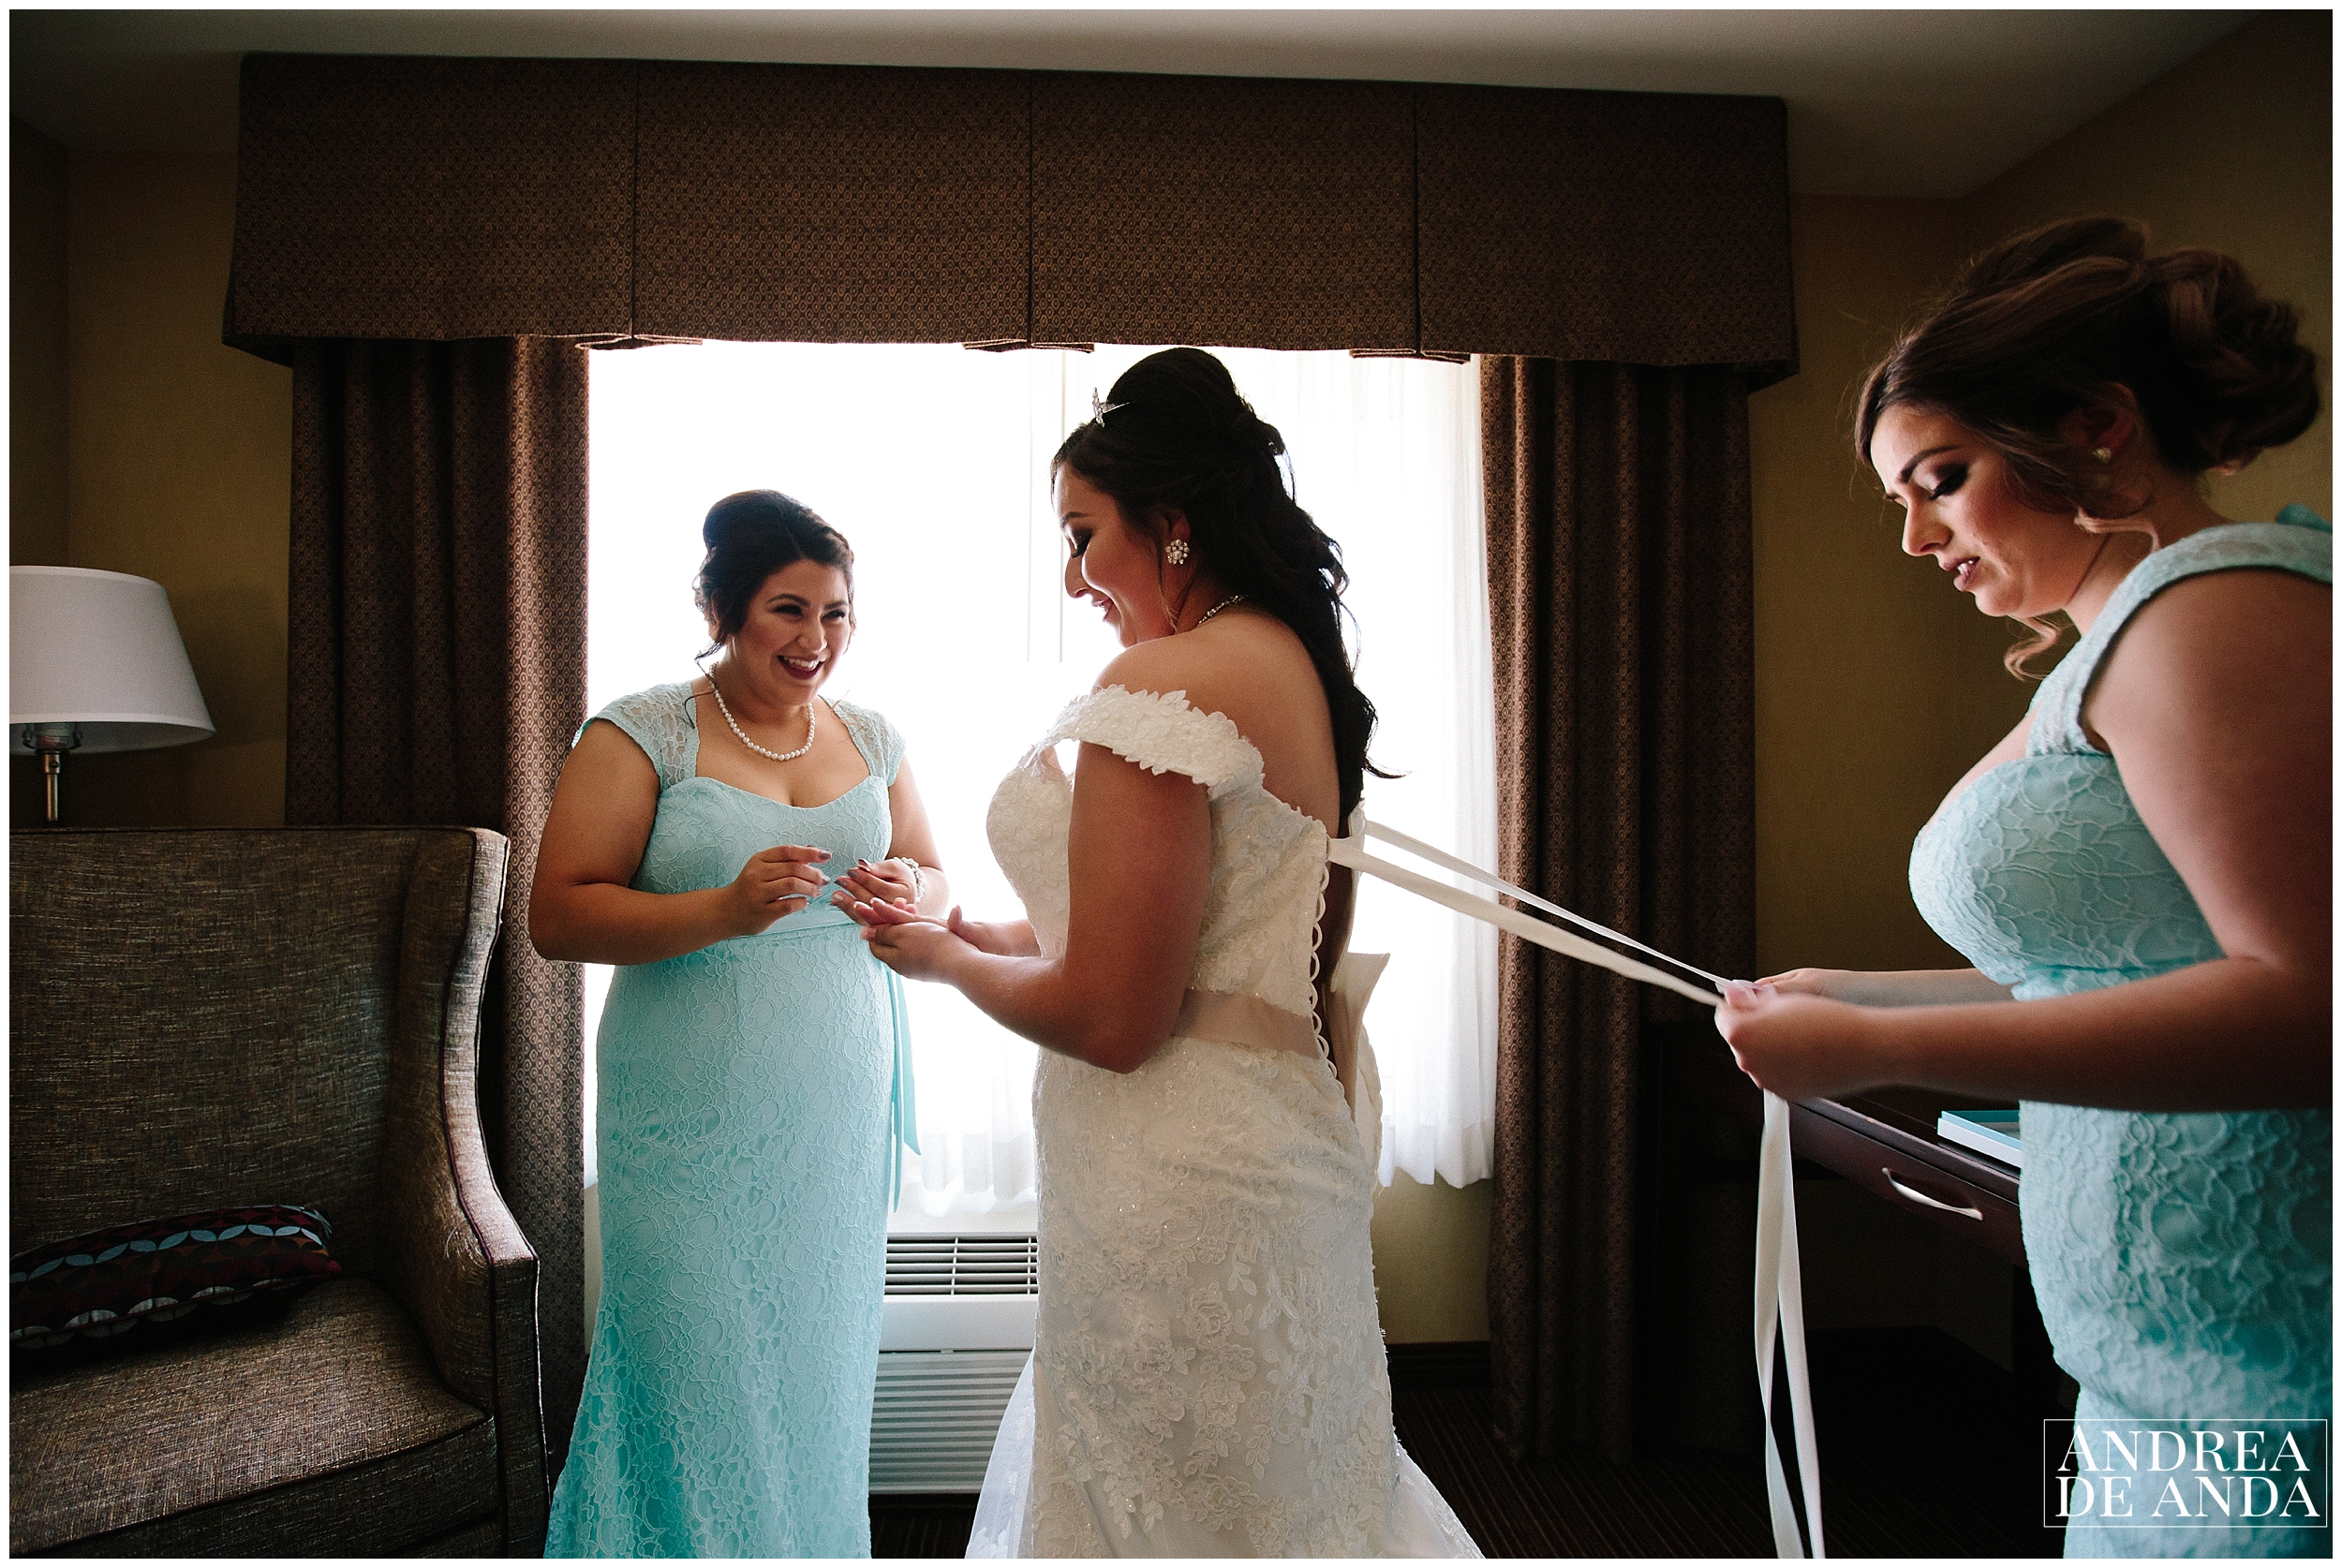 Bride and Bridesmaid at hotel room getting ready for ceremony